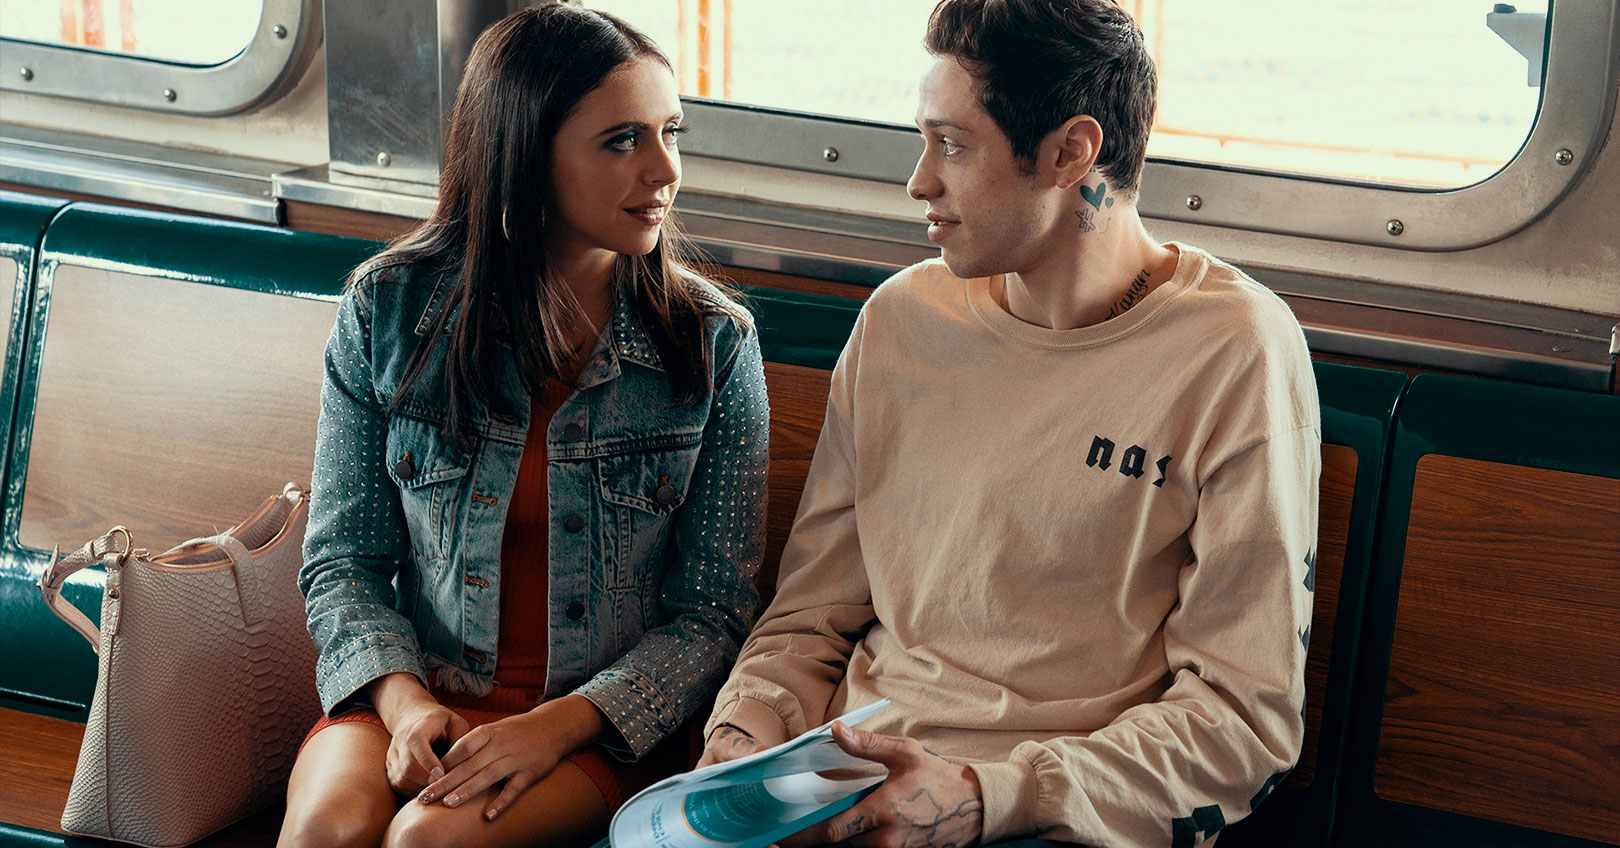 The King of Staten Island - Bel Powley and Pete Davidson